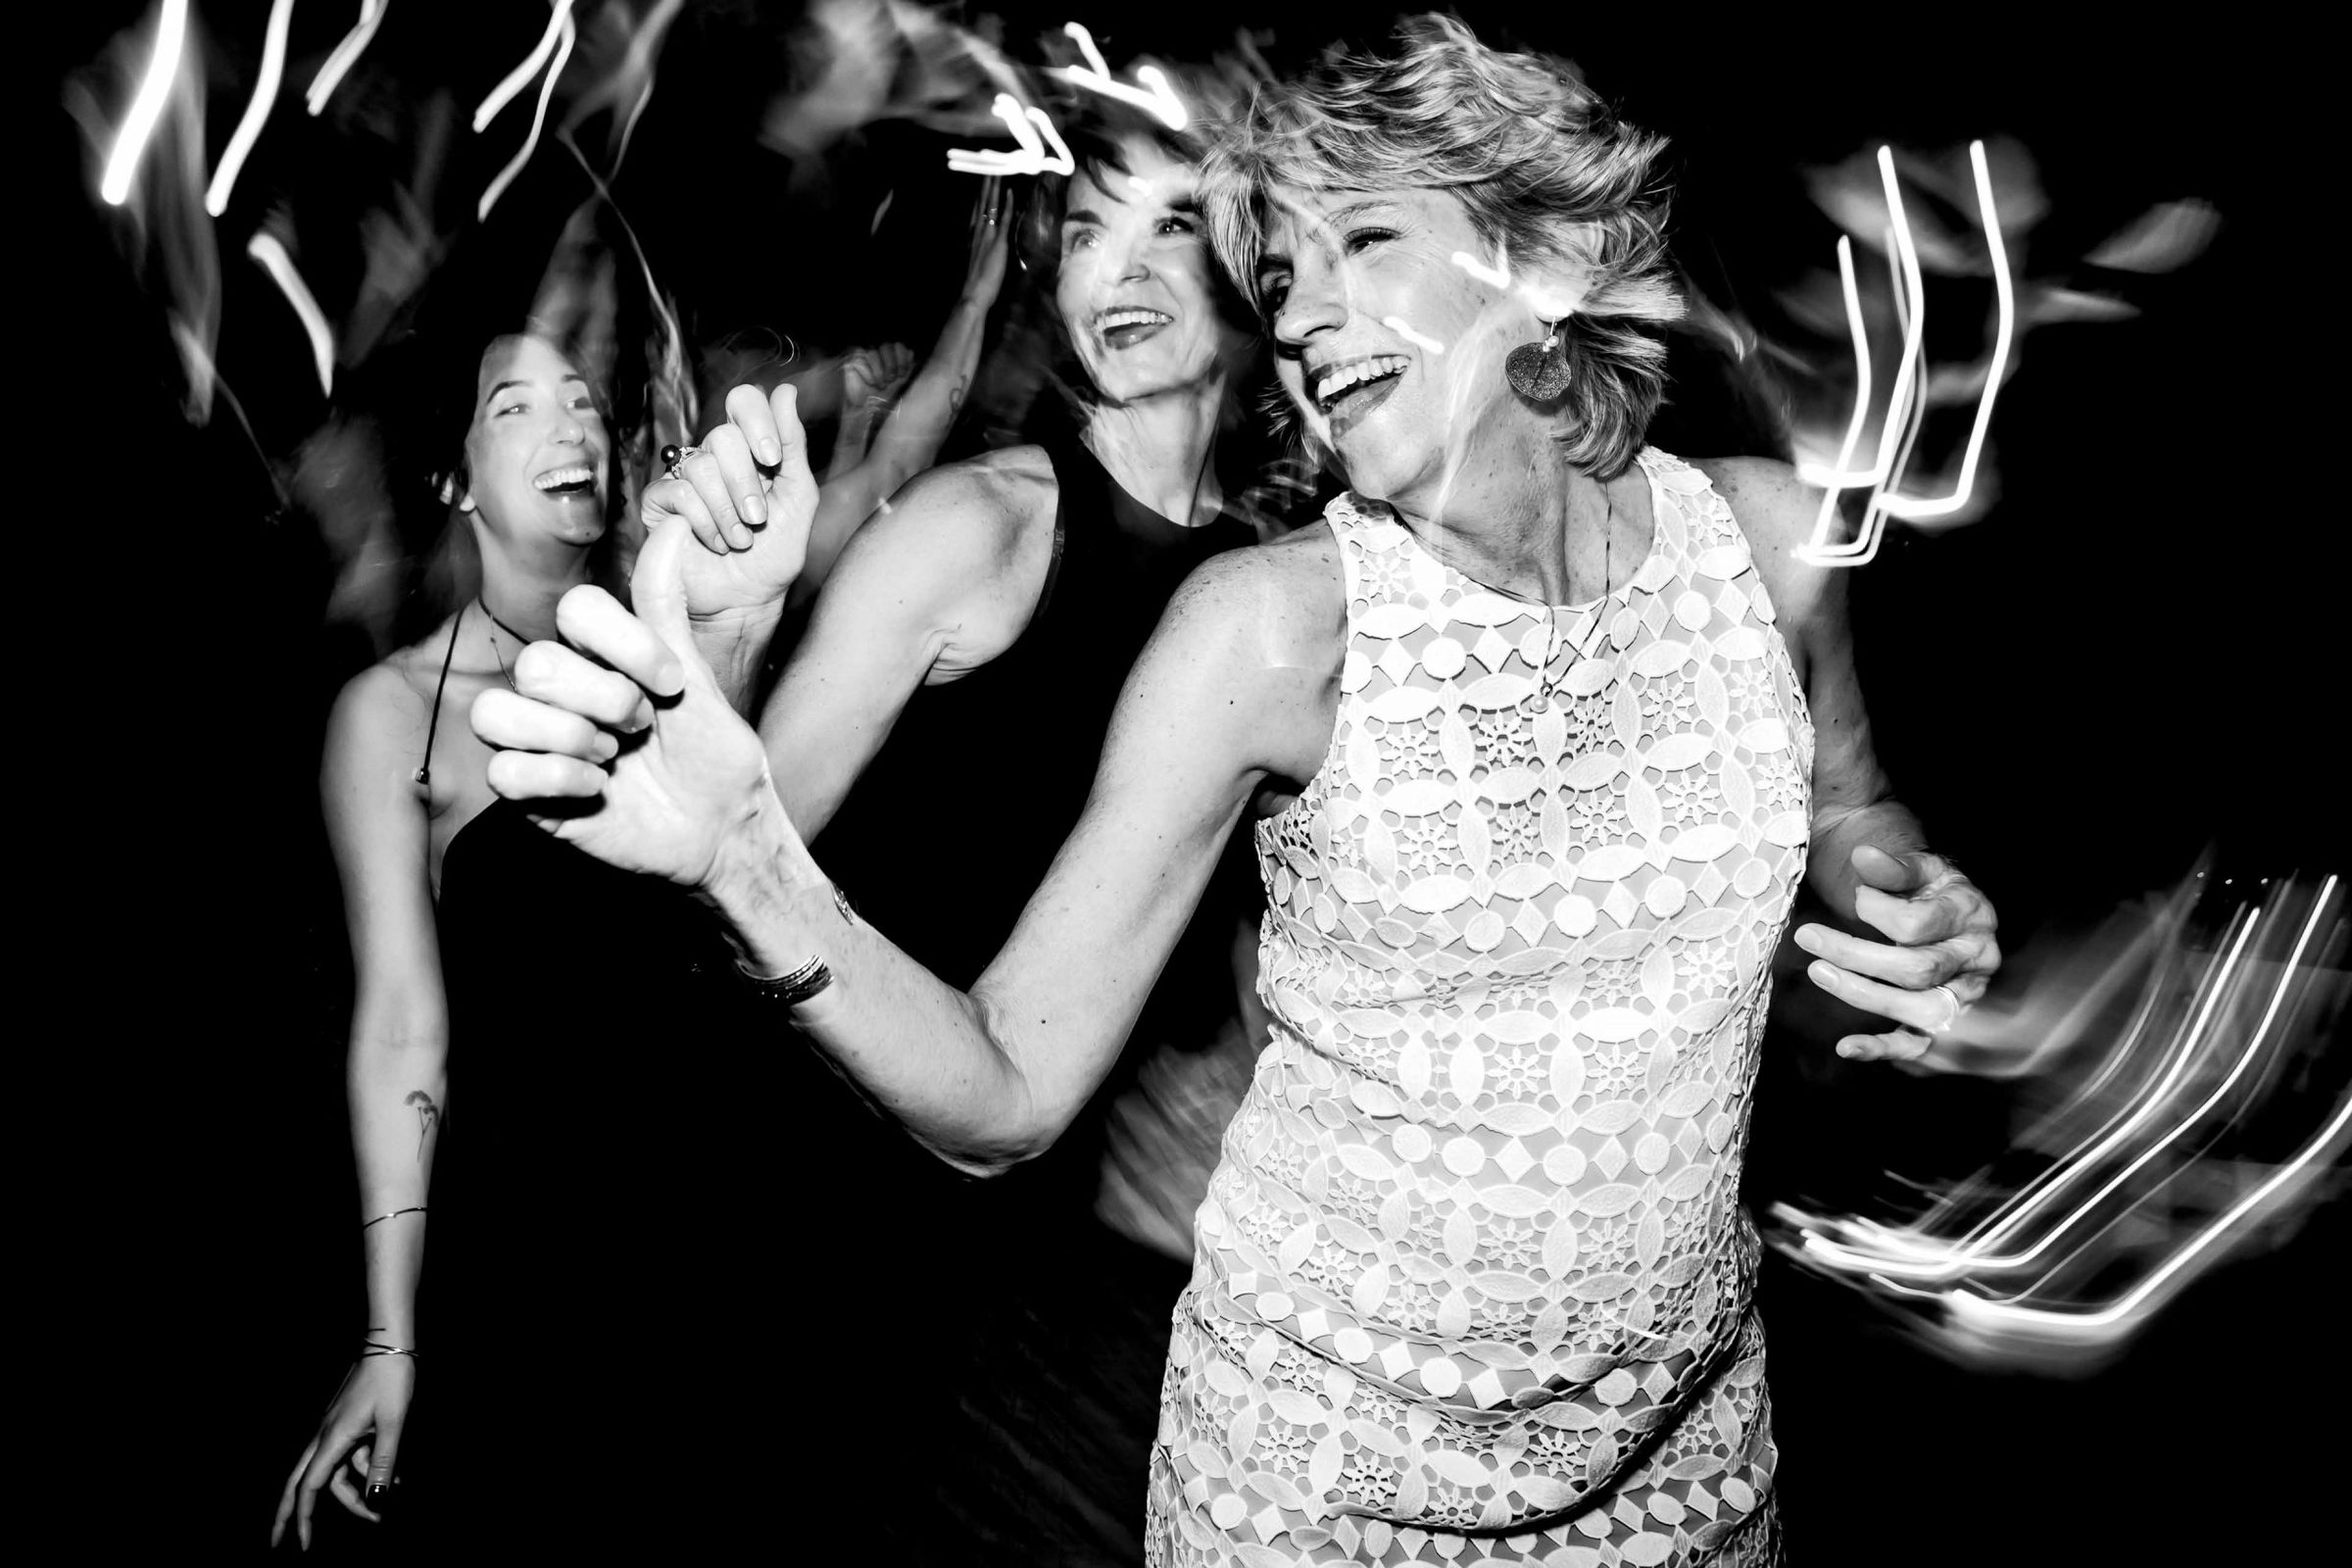 Super fun moms dancing photo at a Cafe Brauer Wedding reception in Chicago, Illinois.